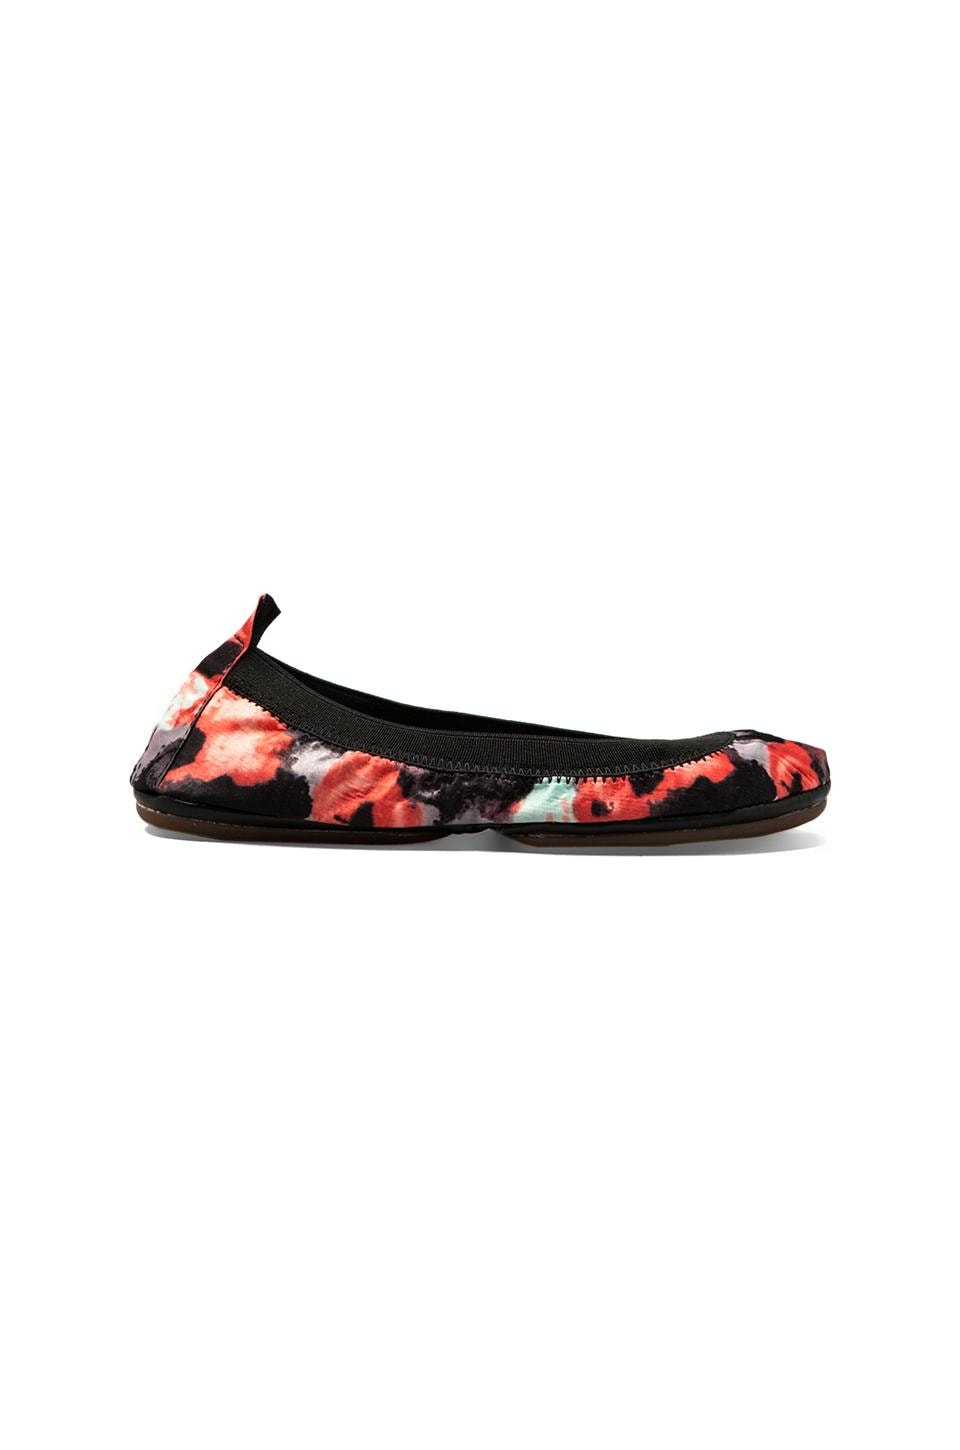 Yosi Samra Abstract Printed Sateen Flat in Black/Coral